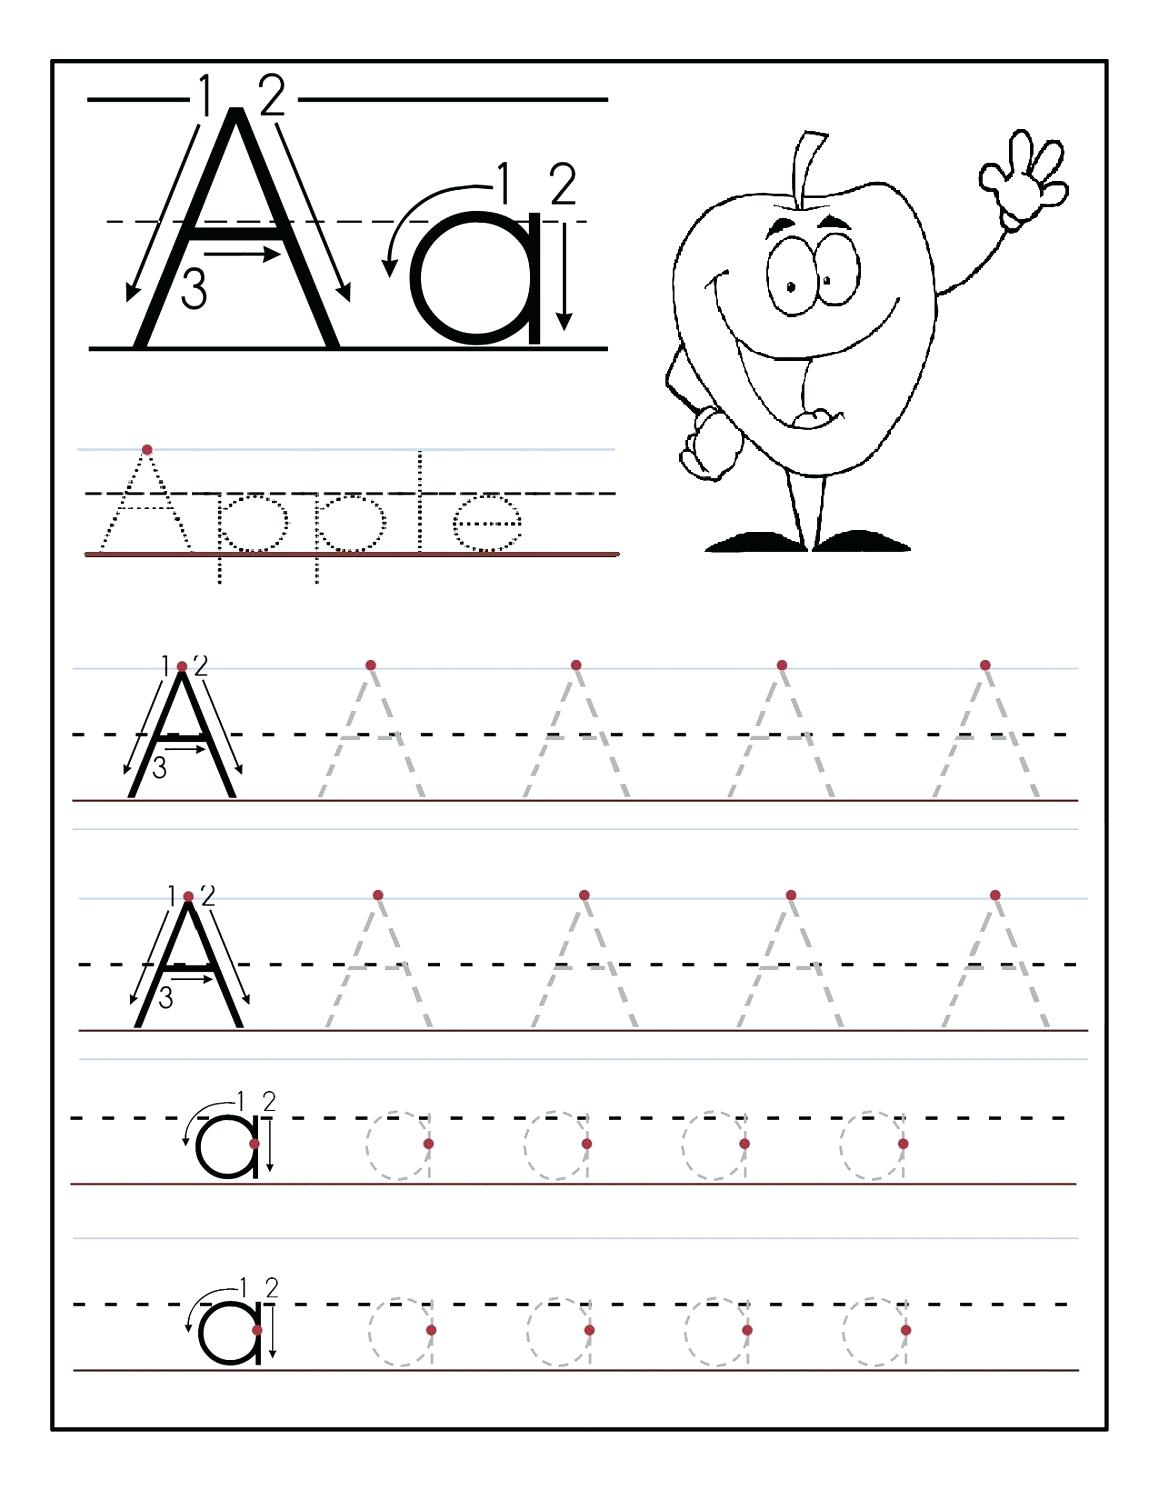 Tracing The Alphabet Printable – Cartofix.club | Printable Abc Letters Worksheets